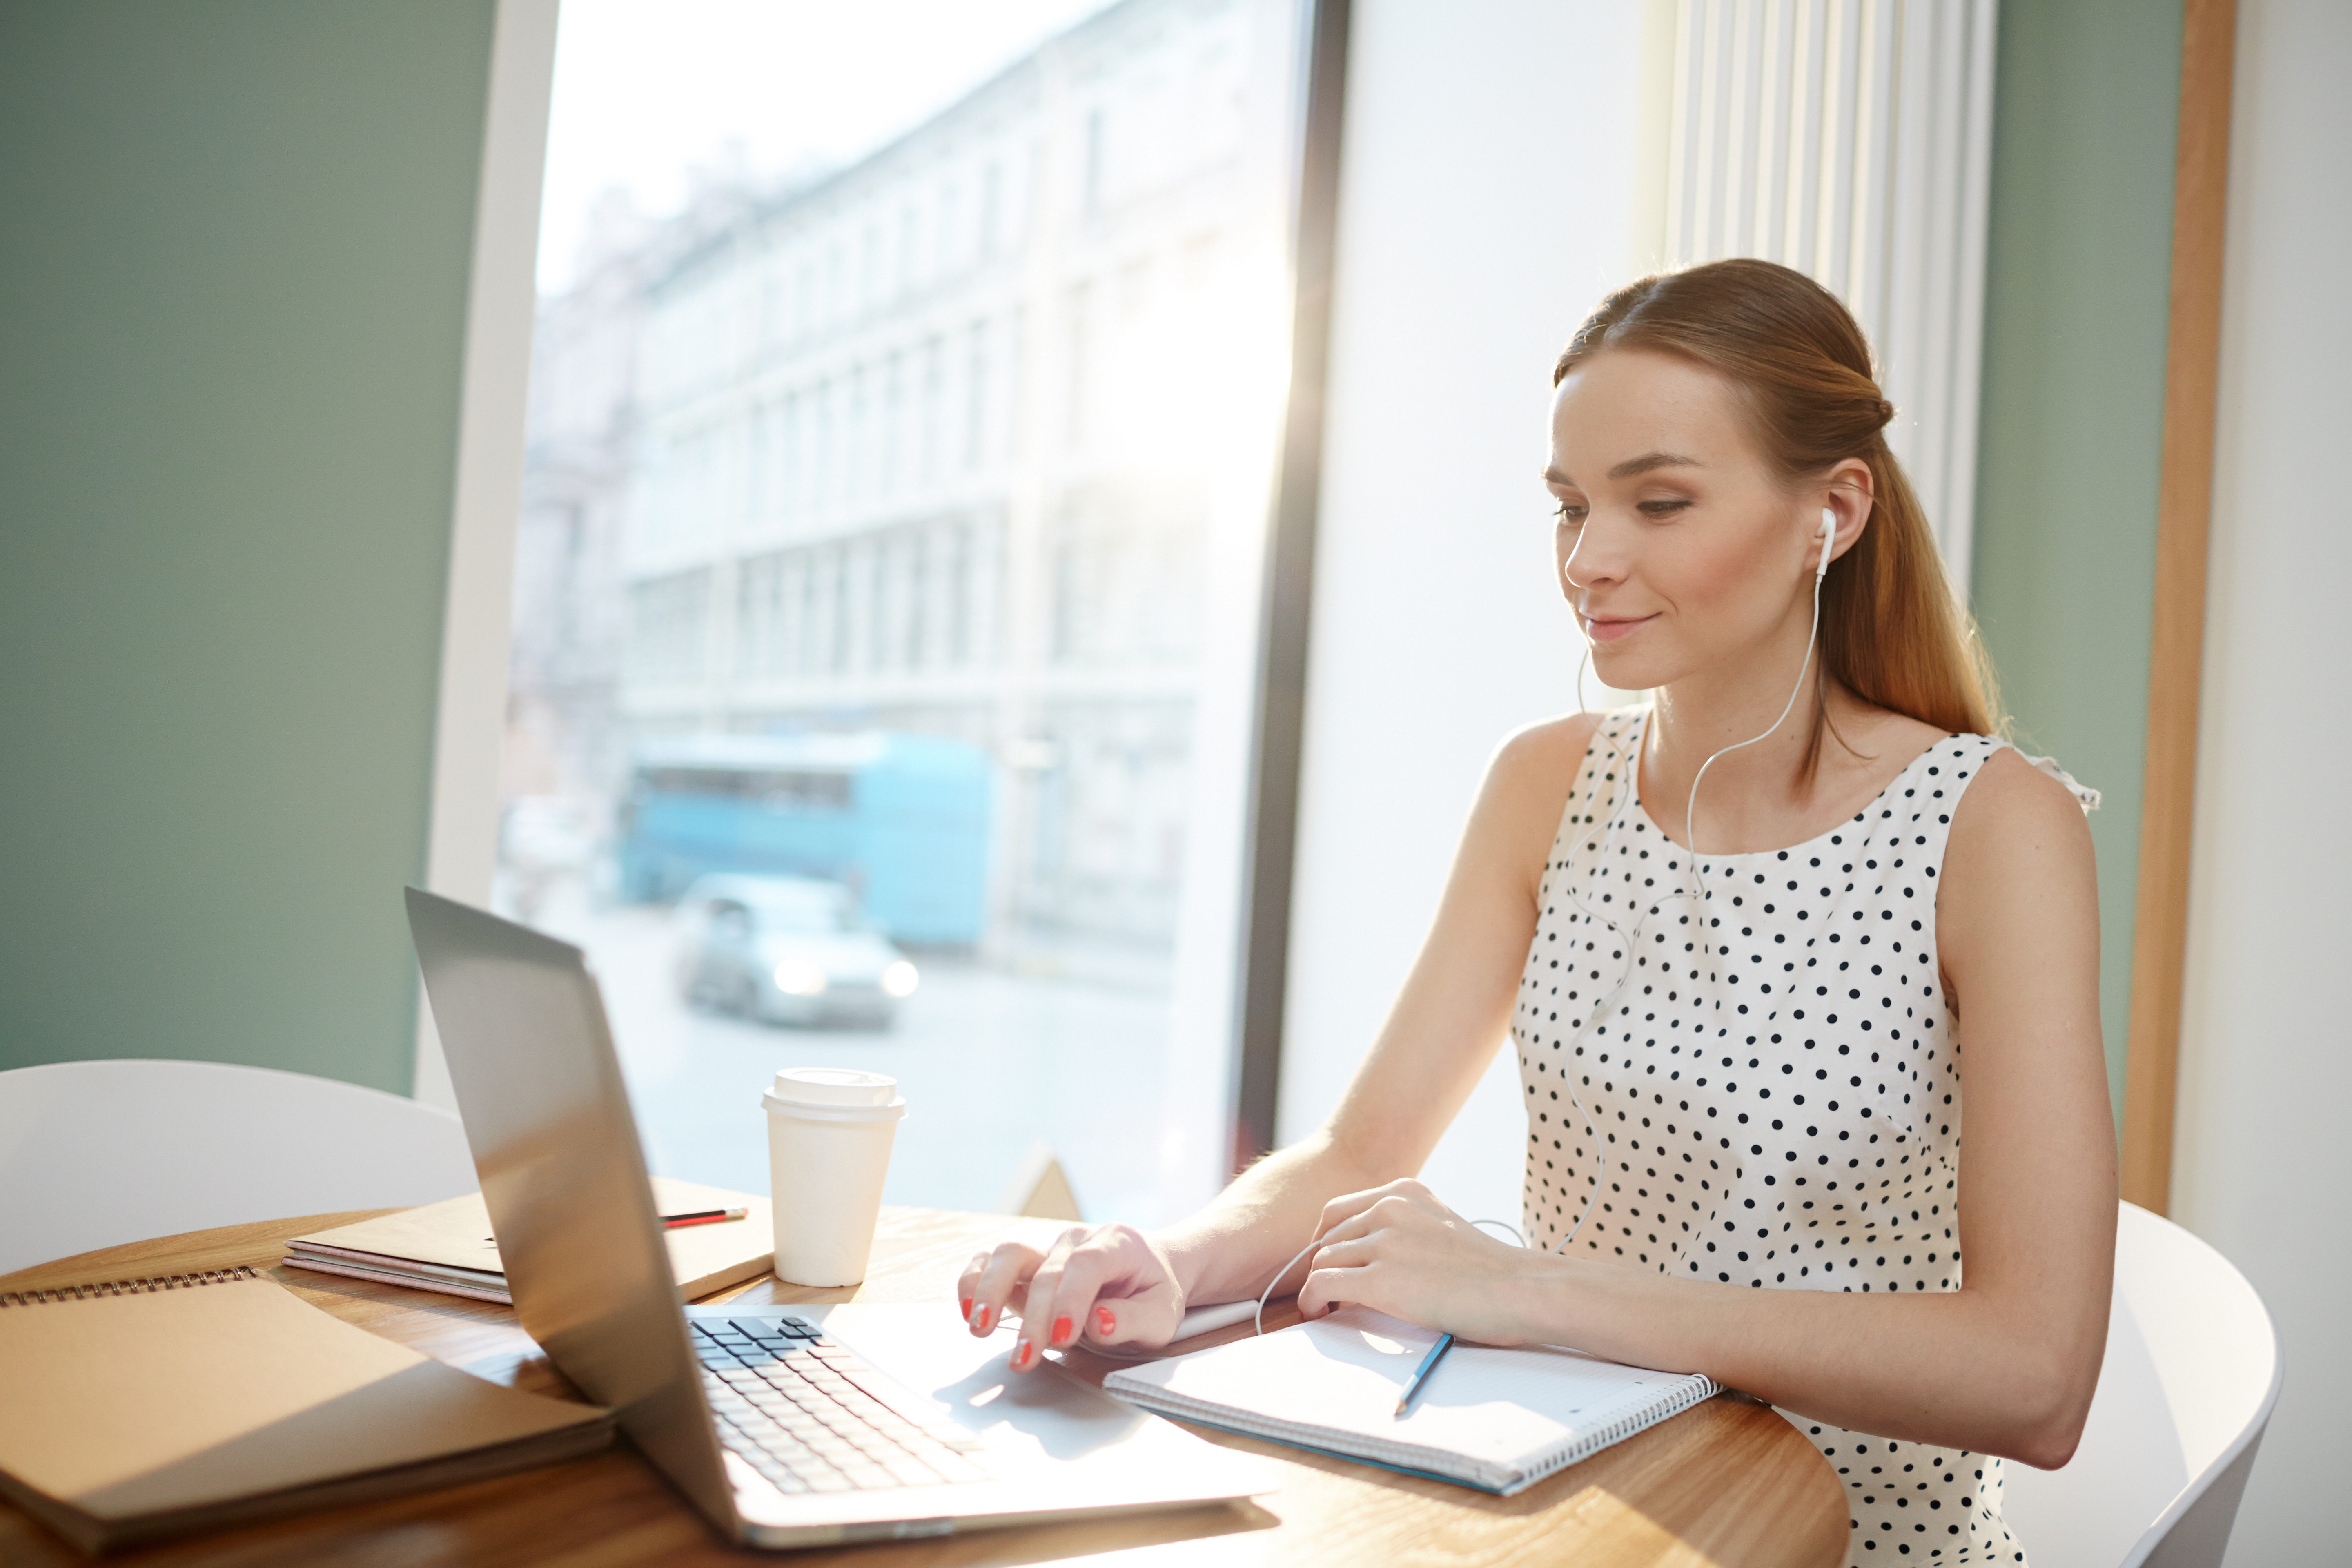 Female employee working remotely